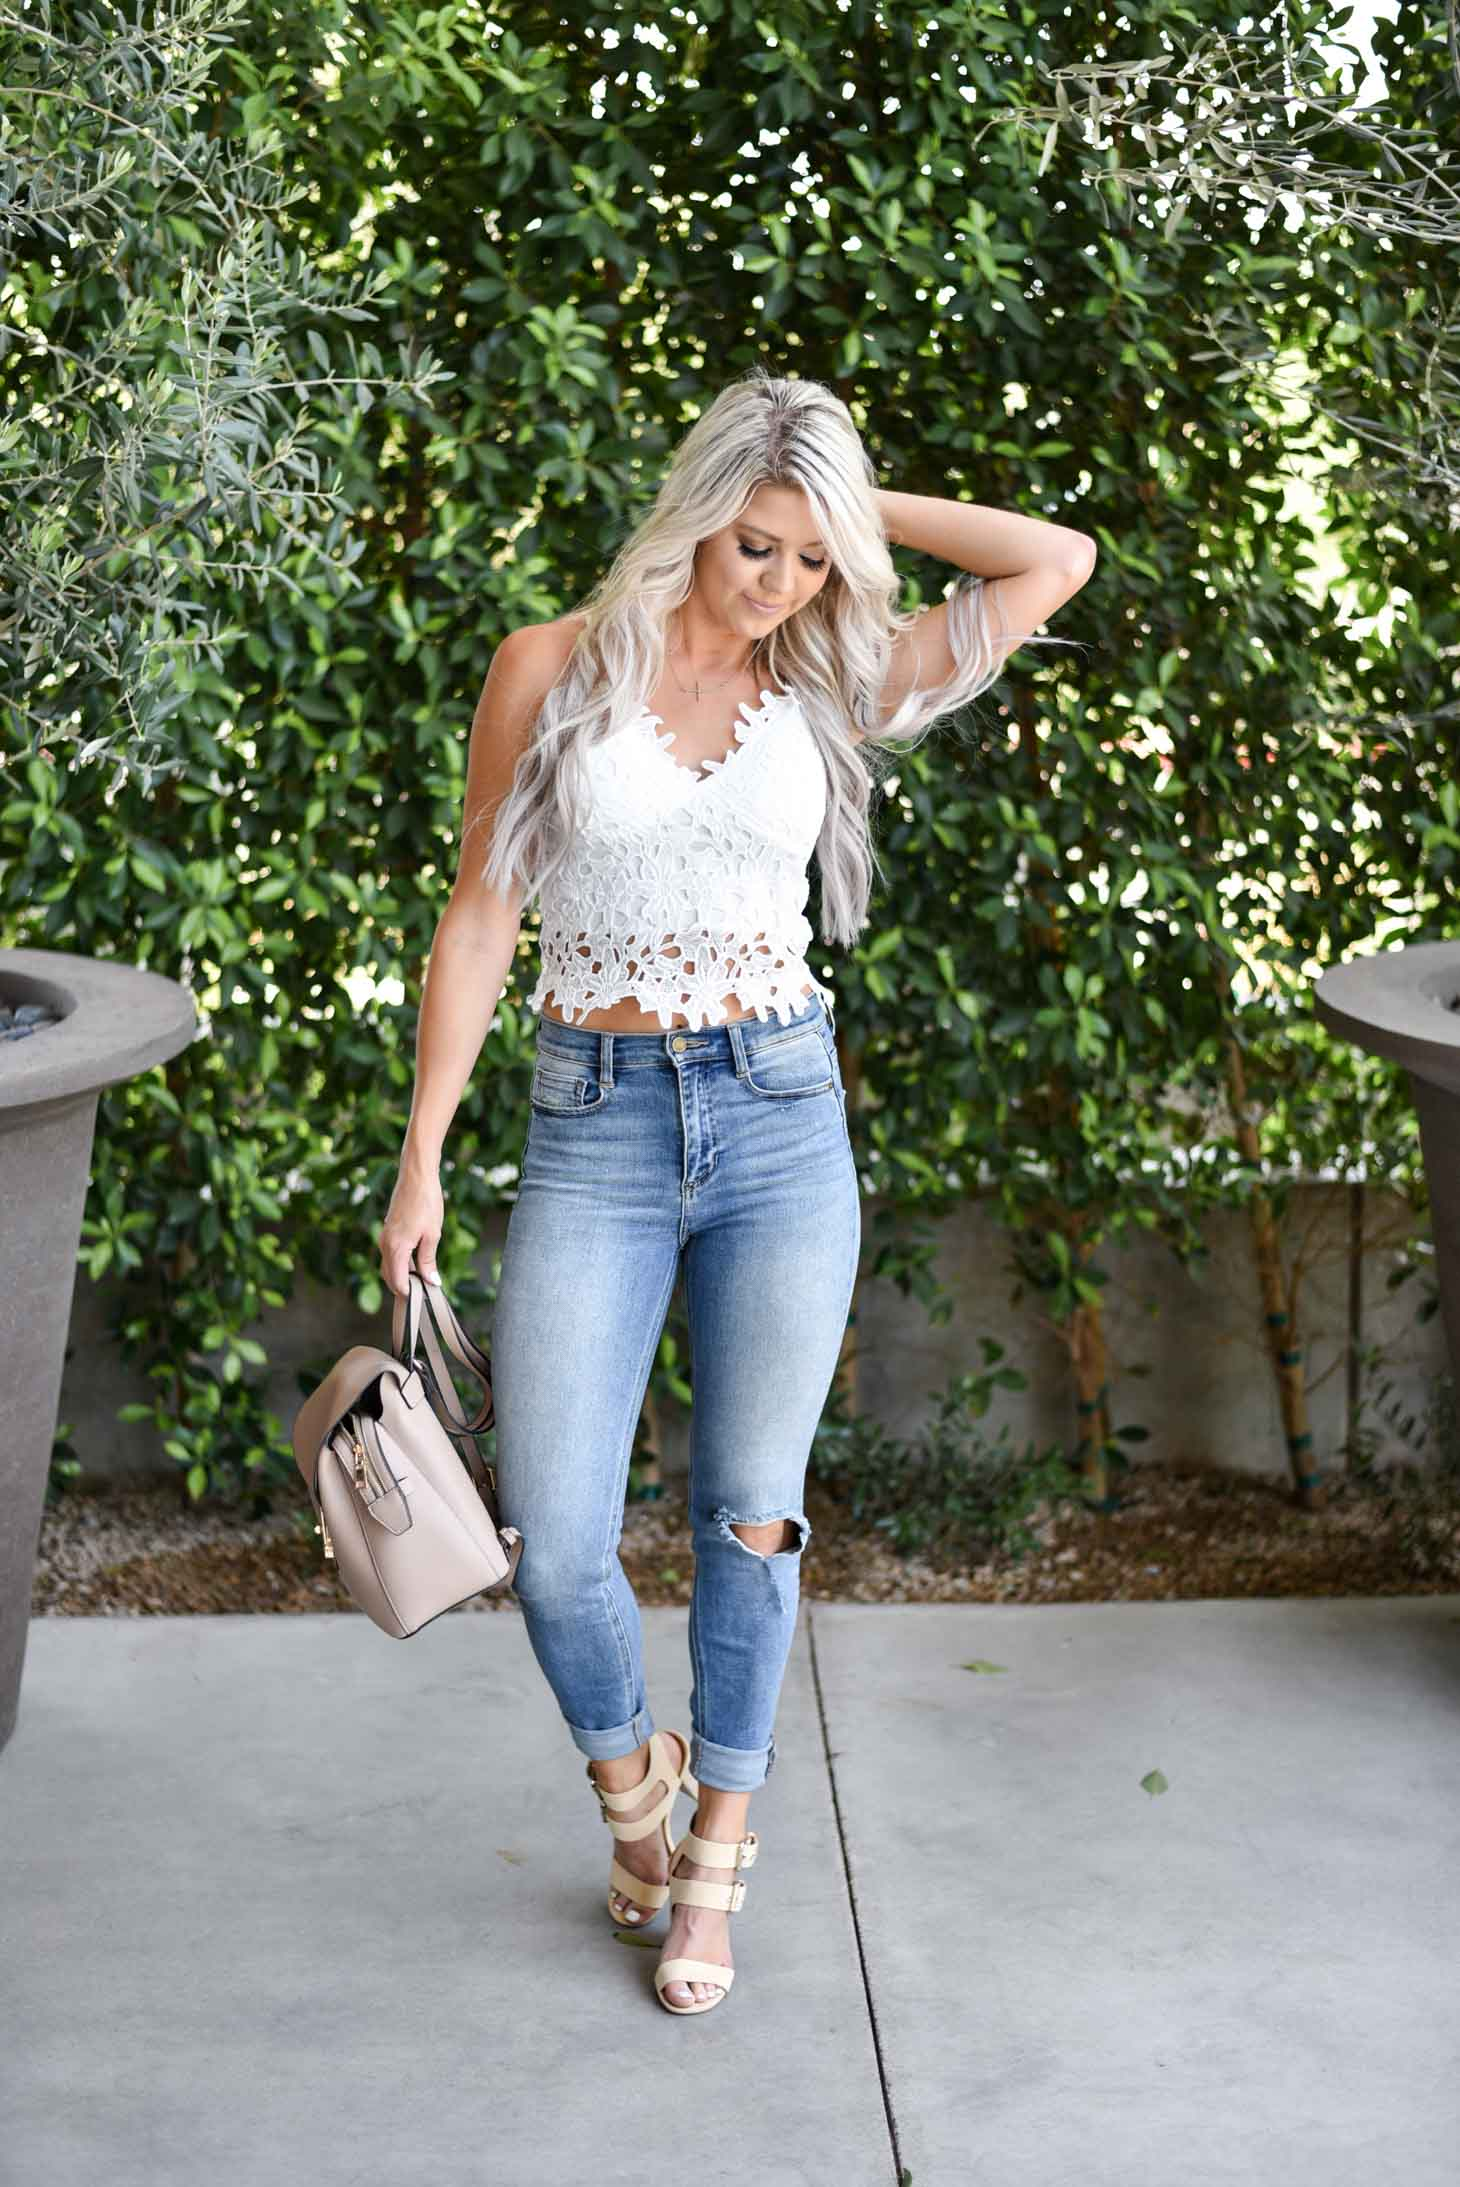 Erin Elizabeth of Wink and a Twirl in this cute white lace cami from Chicwish